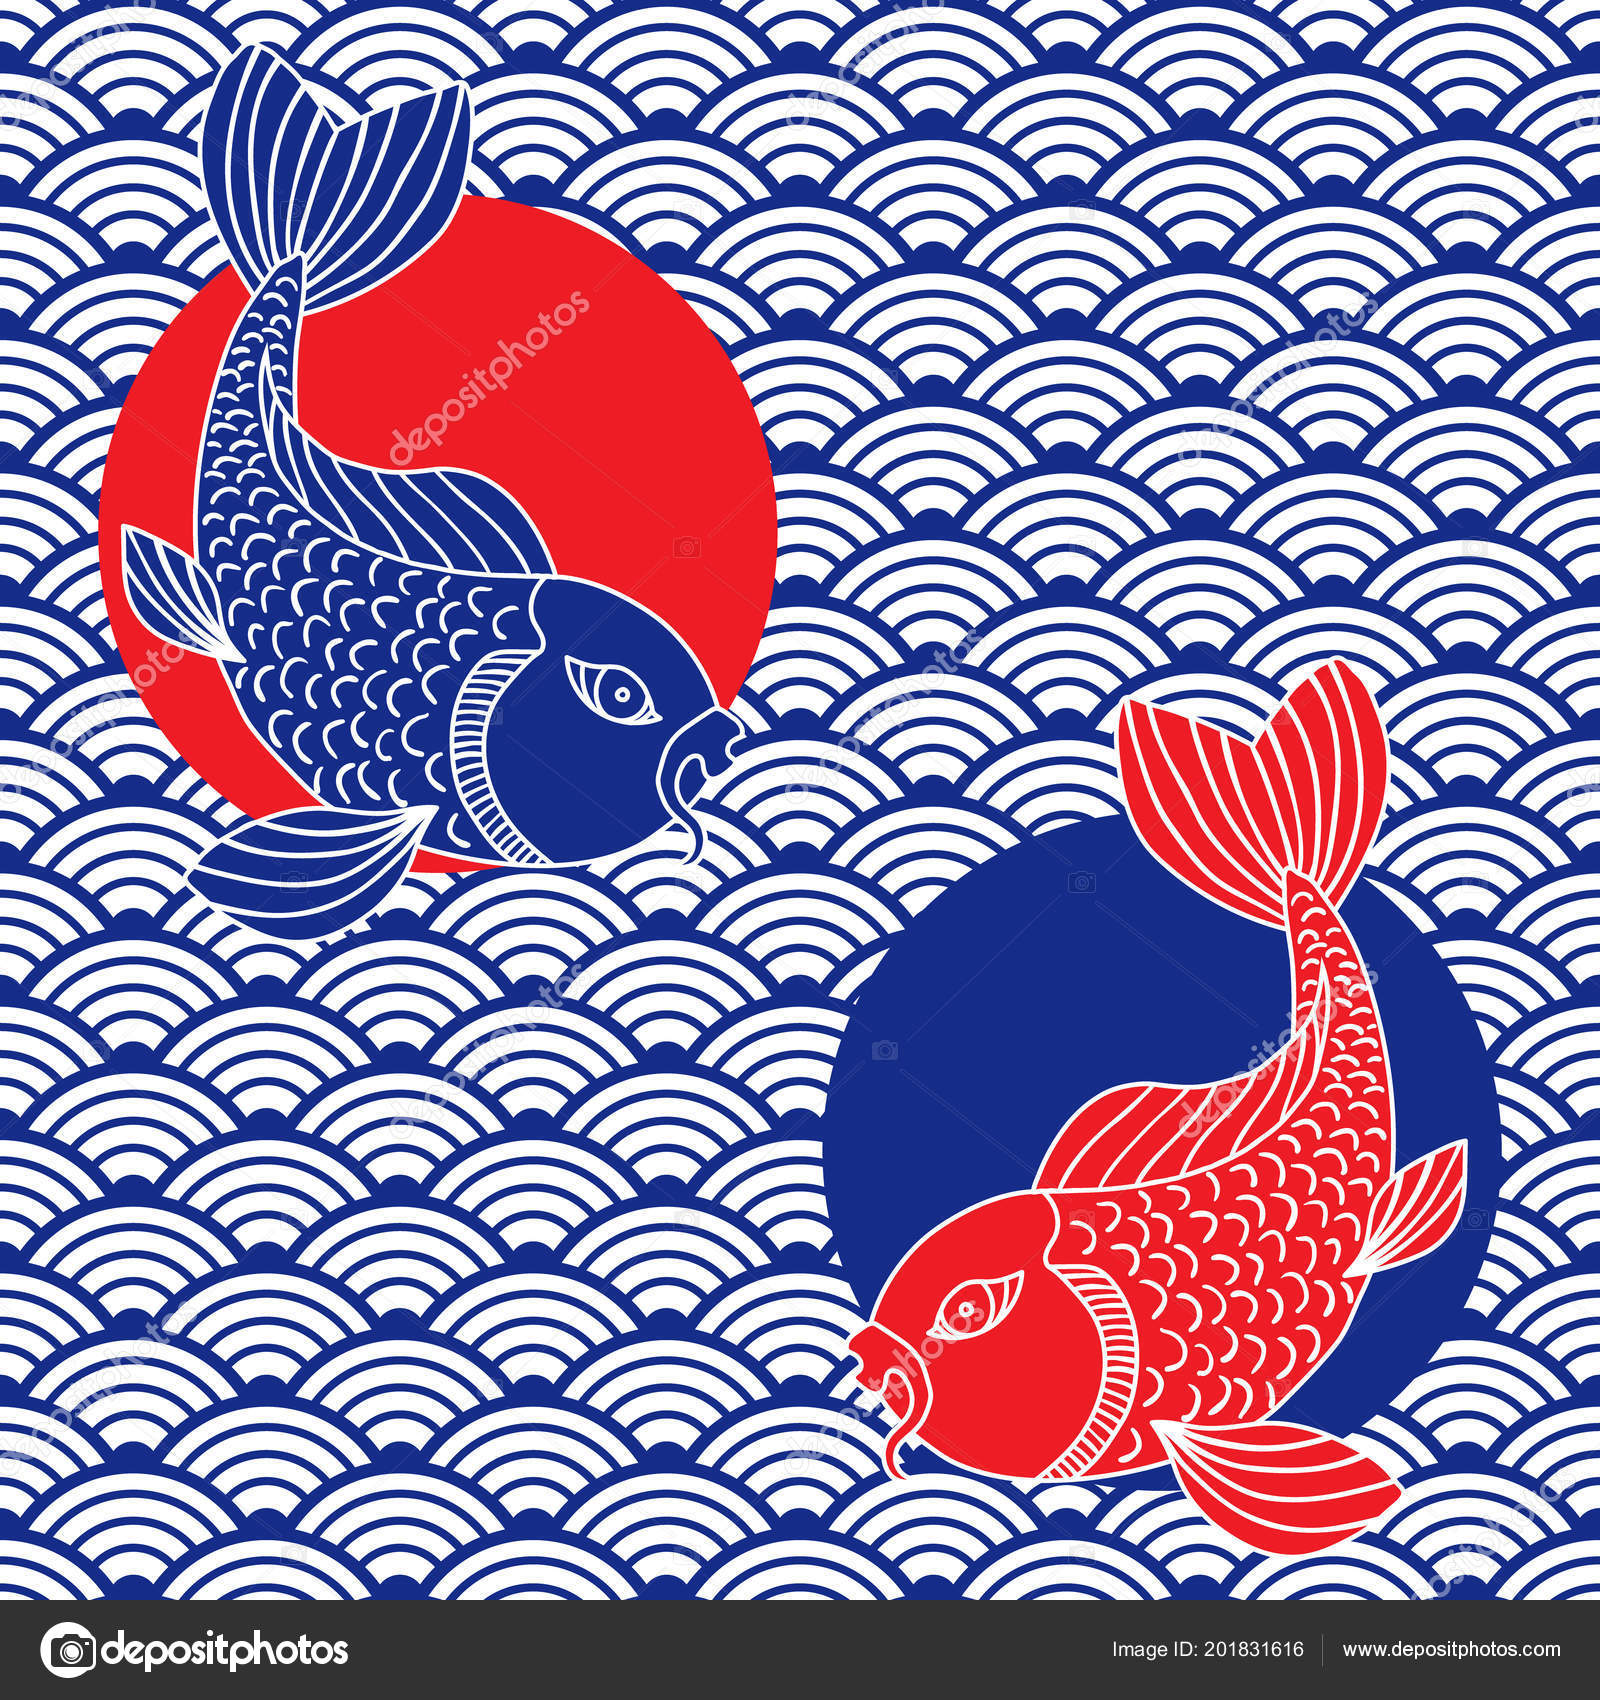 Waves Catfish Symbols Japanese Ornament Red Blue White Colors Vector